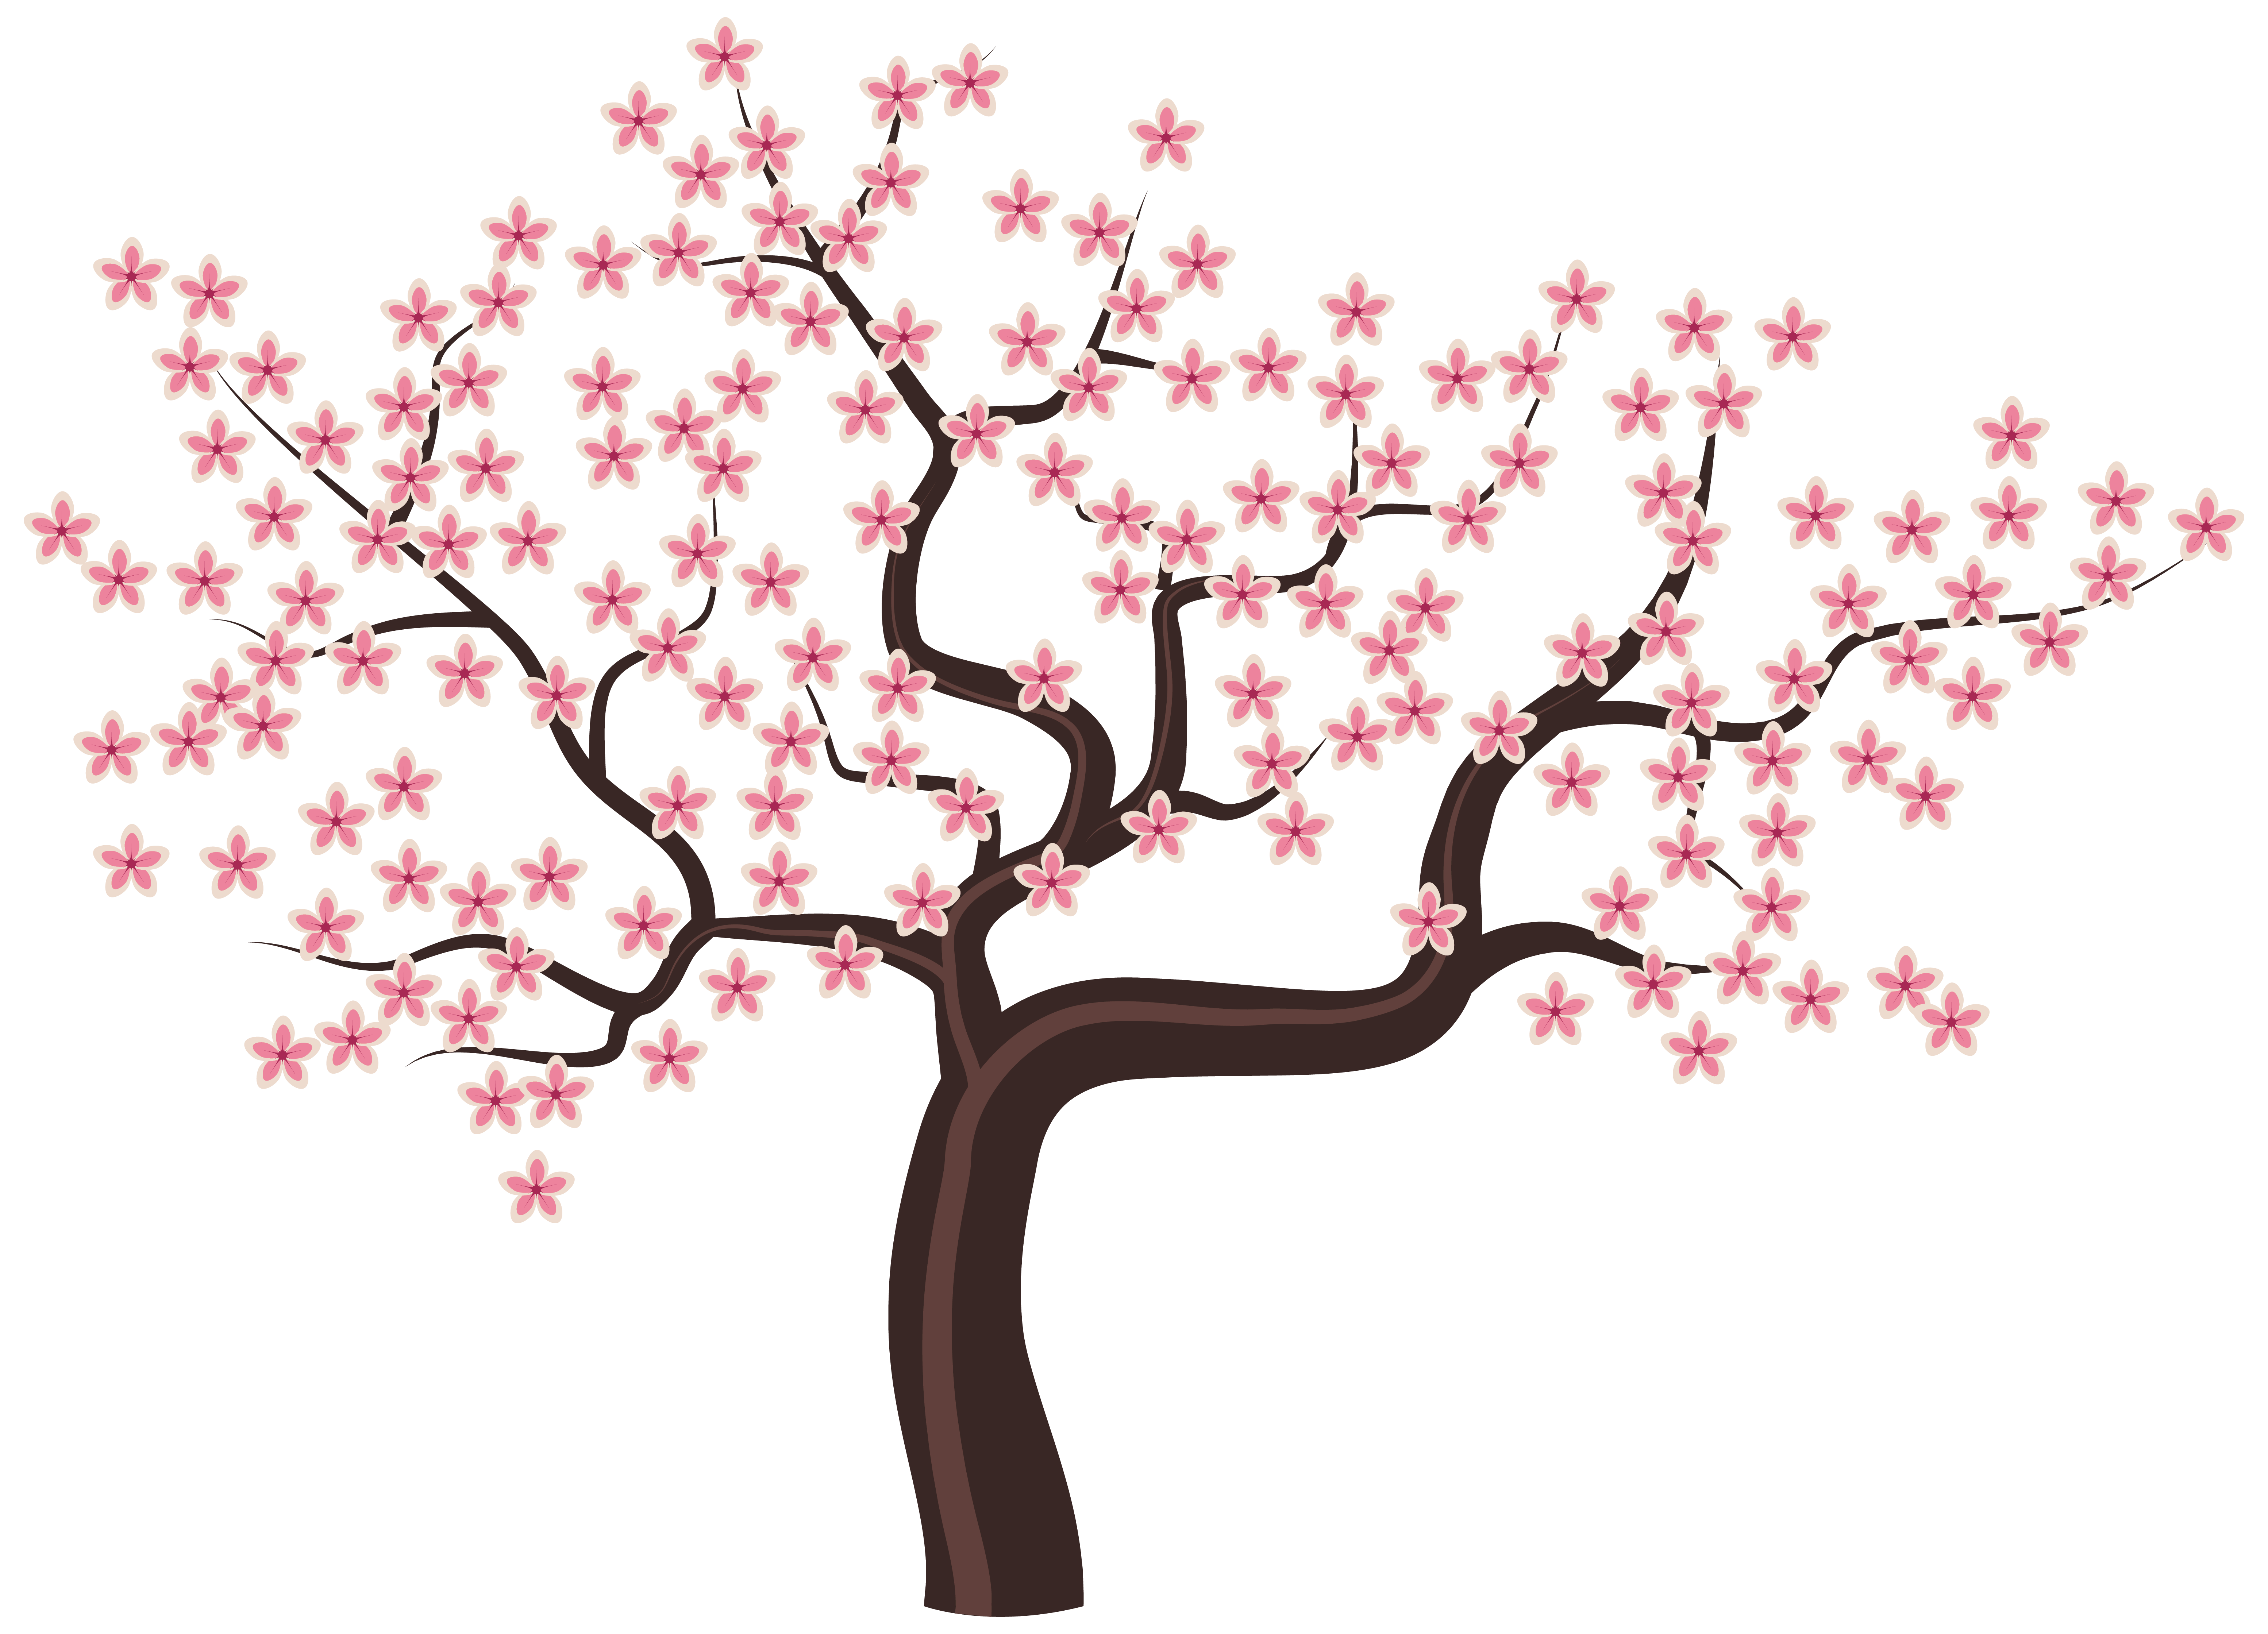 Png Tree With White And Pink Flowers - Flower tree vector download png - RR collections